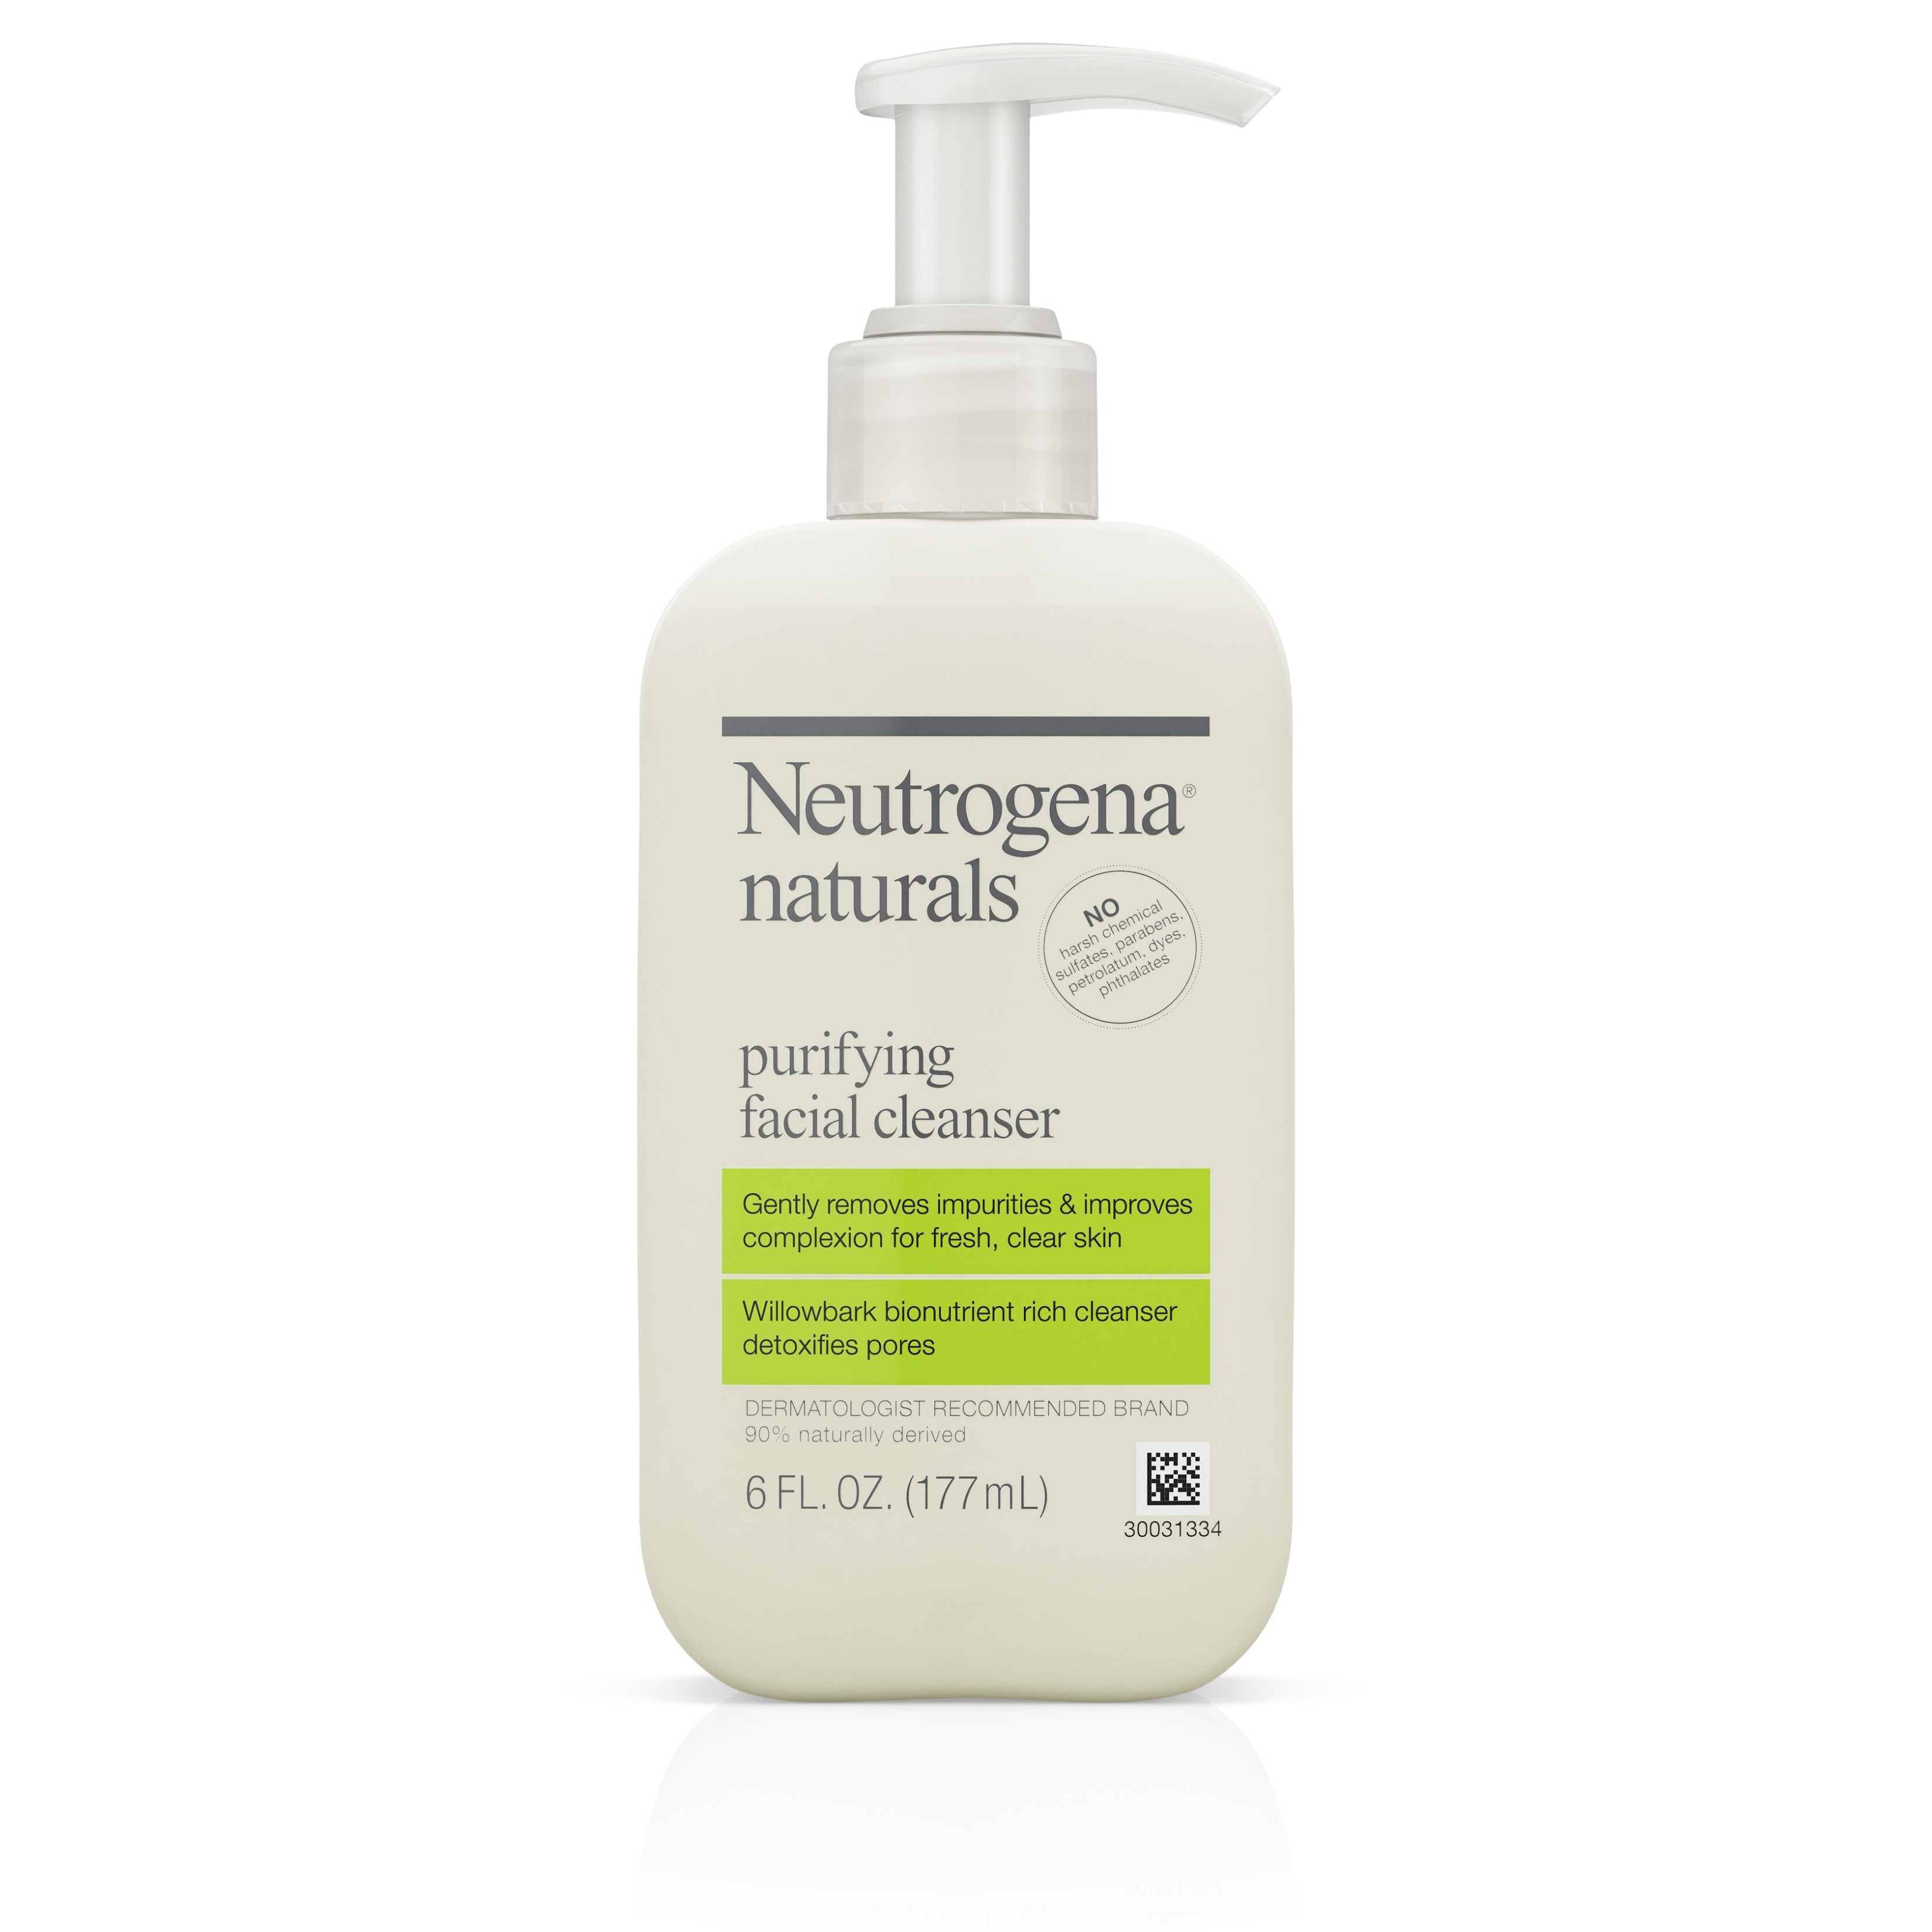 Neutrogena Naturals Purifying Facial Cleanser With Salicylic Acid, 6 Fl. Oz.